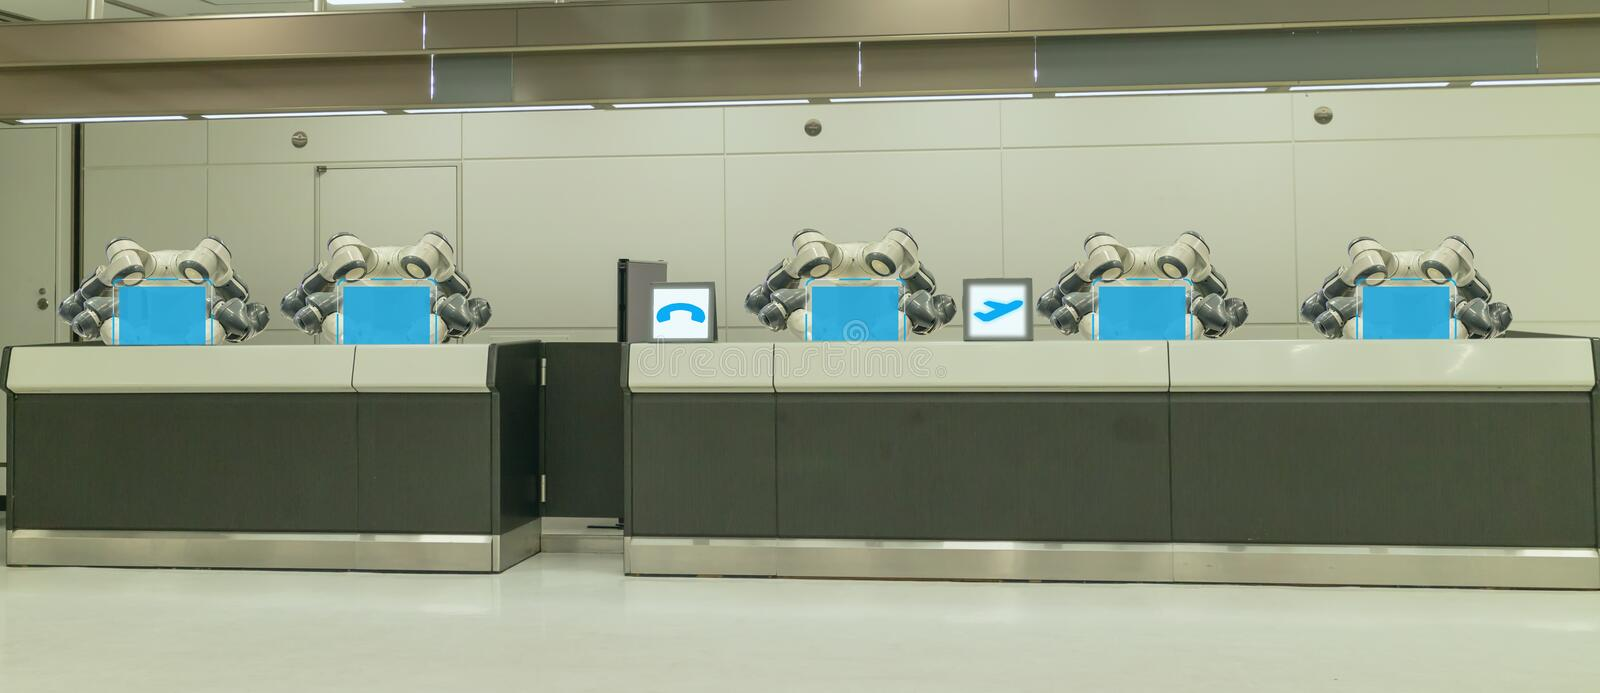 Smart hotel in hospitality industry 4.0 concept, the receptionist robot robot assistant in lobby of hotel or airports always w royalty free stock photography